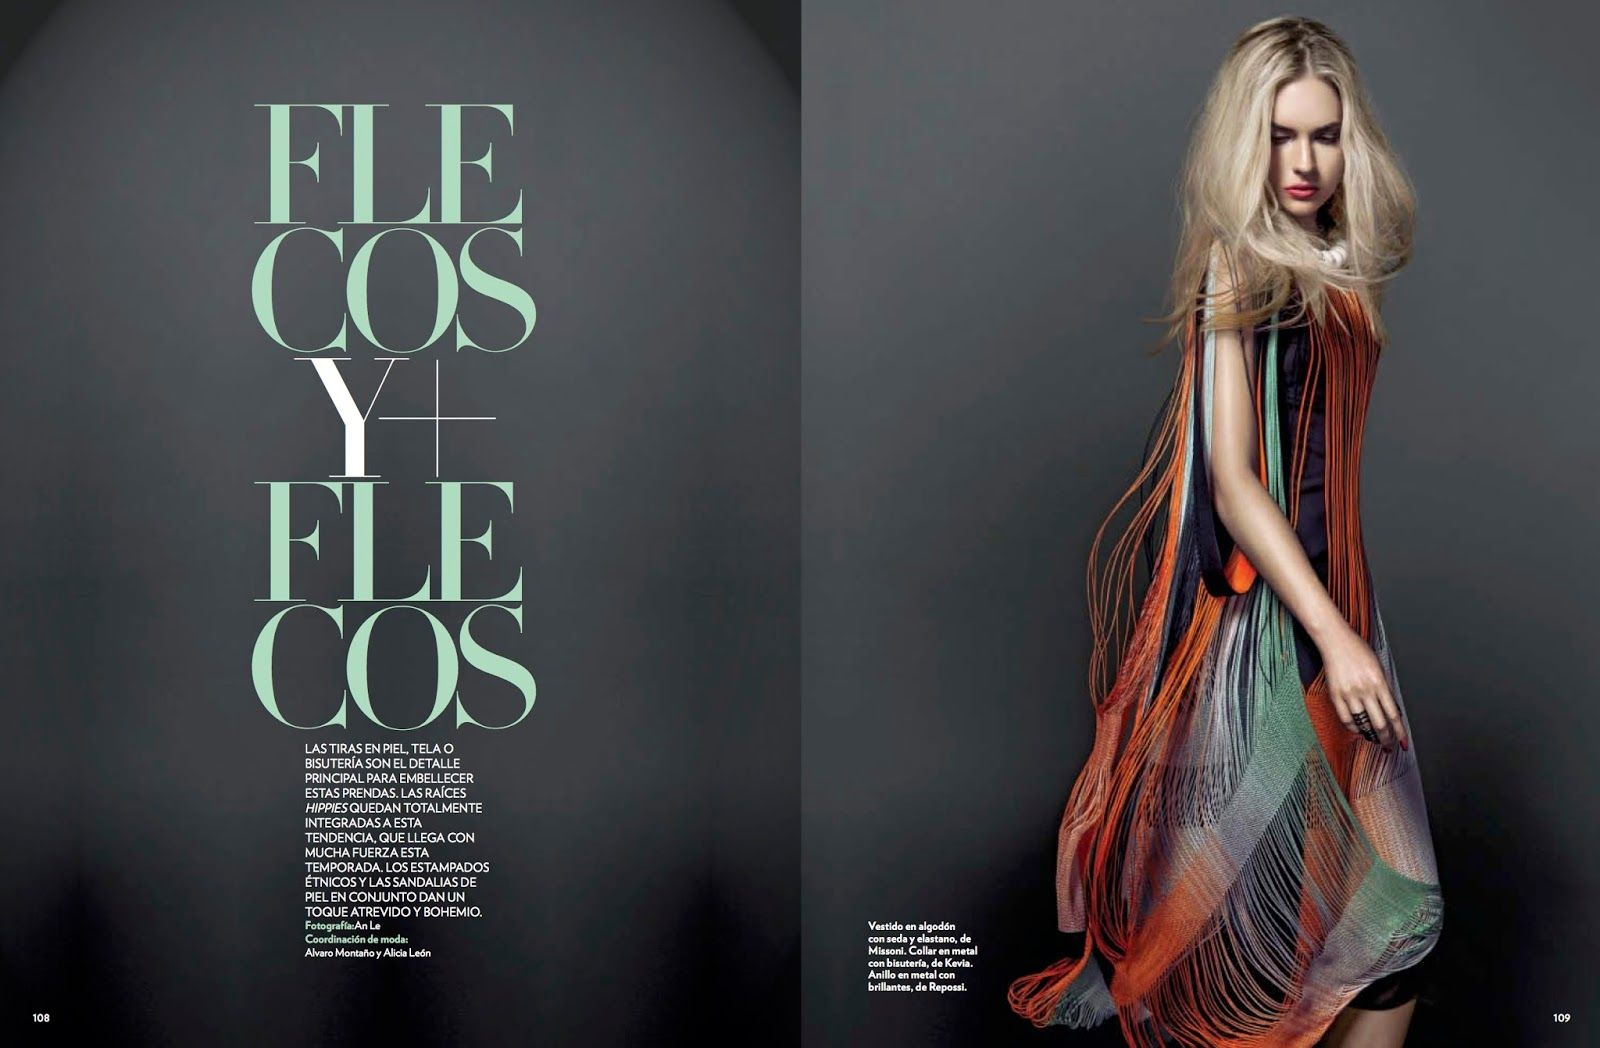 visual optimism; fashion editorials, shows, campaigns & more!: flecos y flecos: courtney james by an le for marie claire mexico april 2014